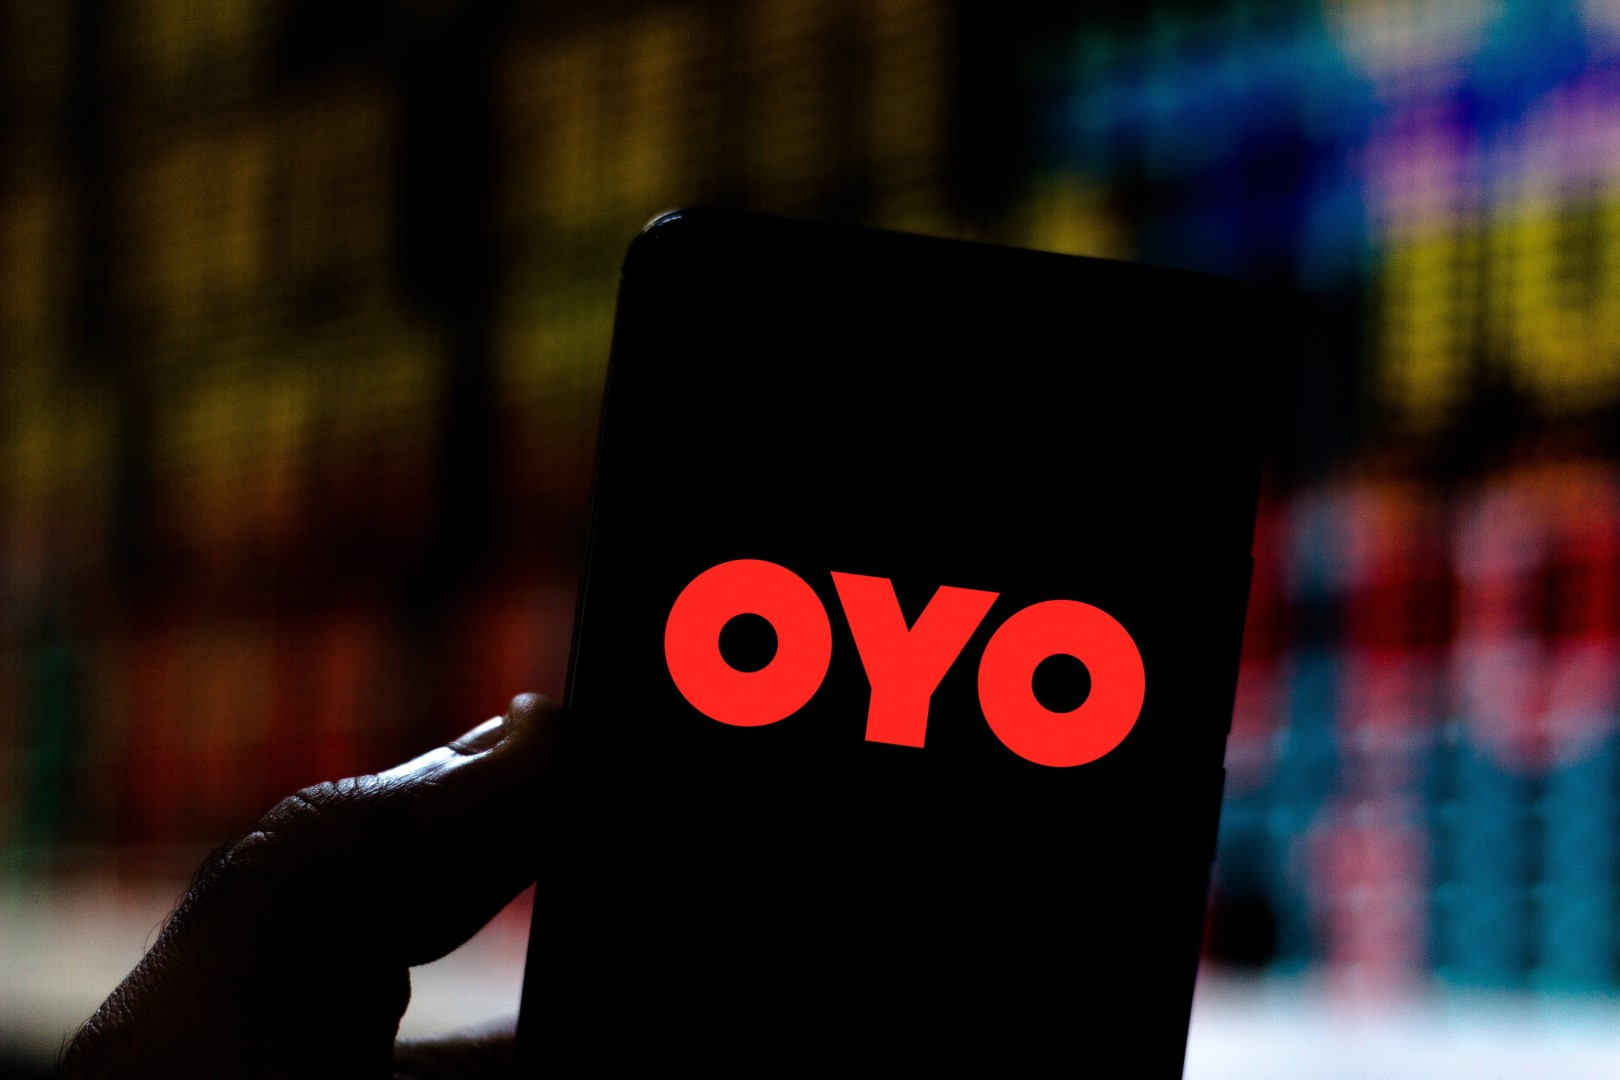 OYO Hotels & Homes logo seen displayed on a smartphone